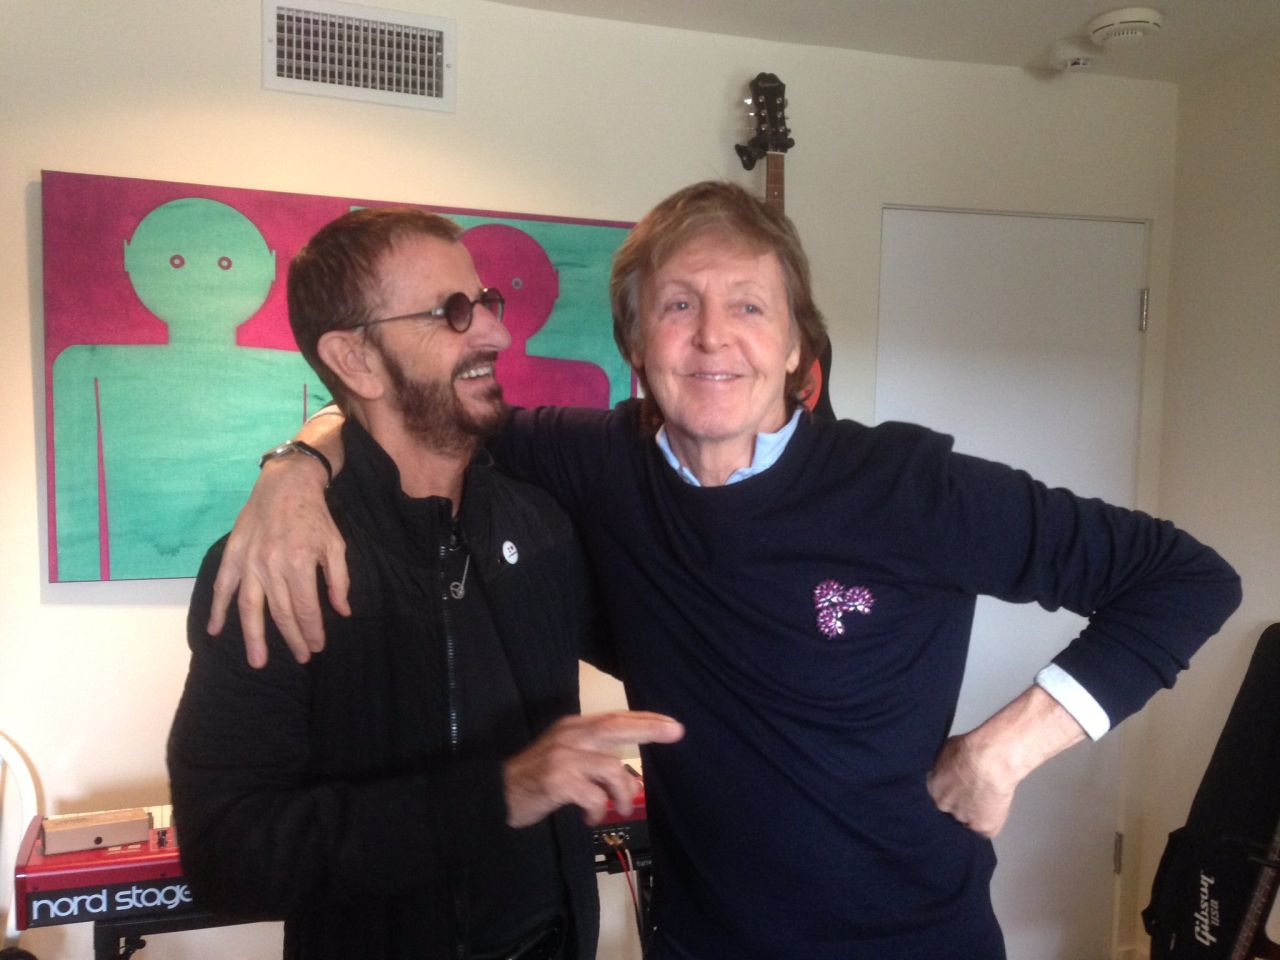 Single Ringo Starr Paul McCartney We're on the Road Again